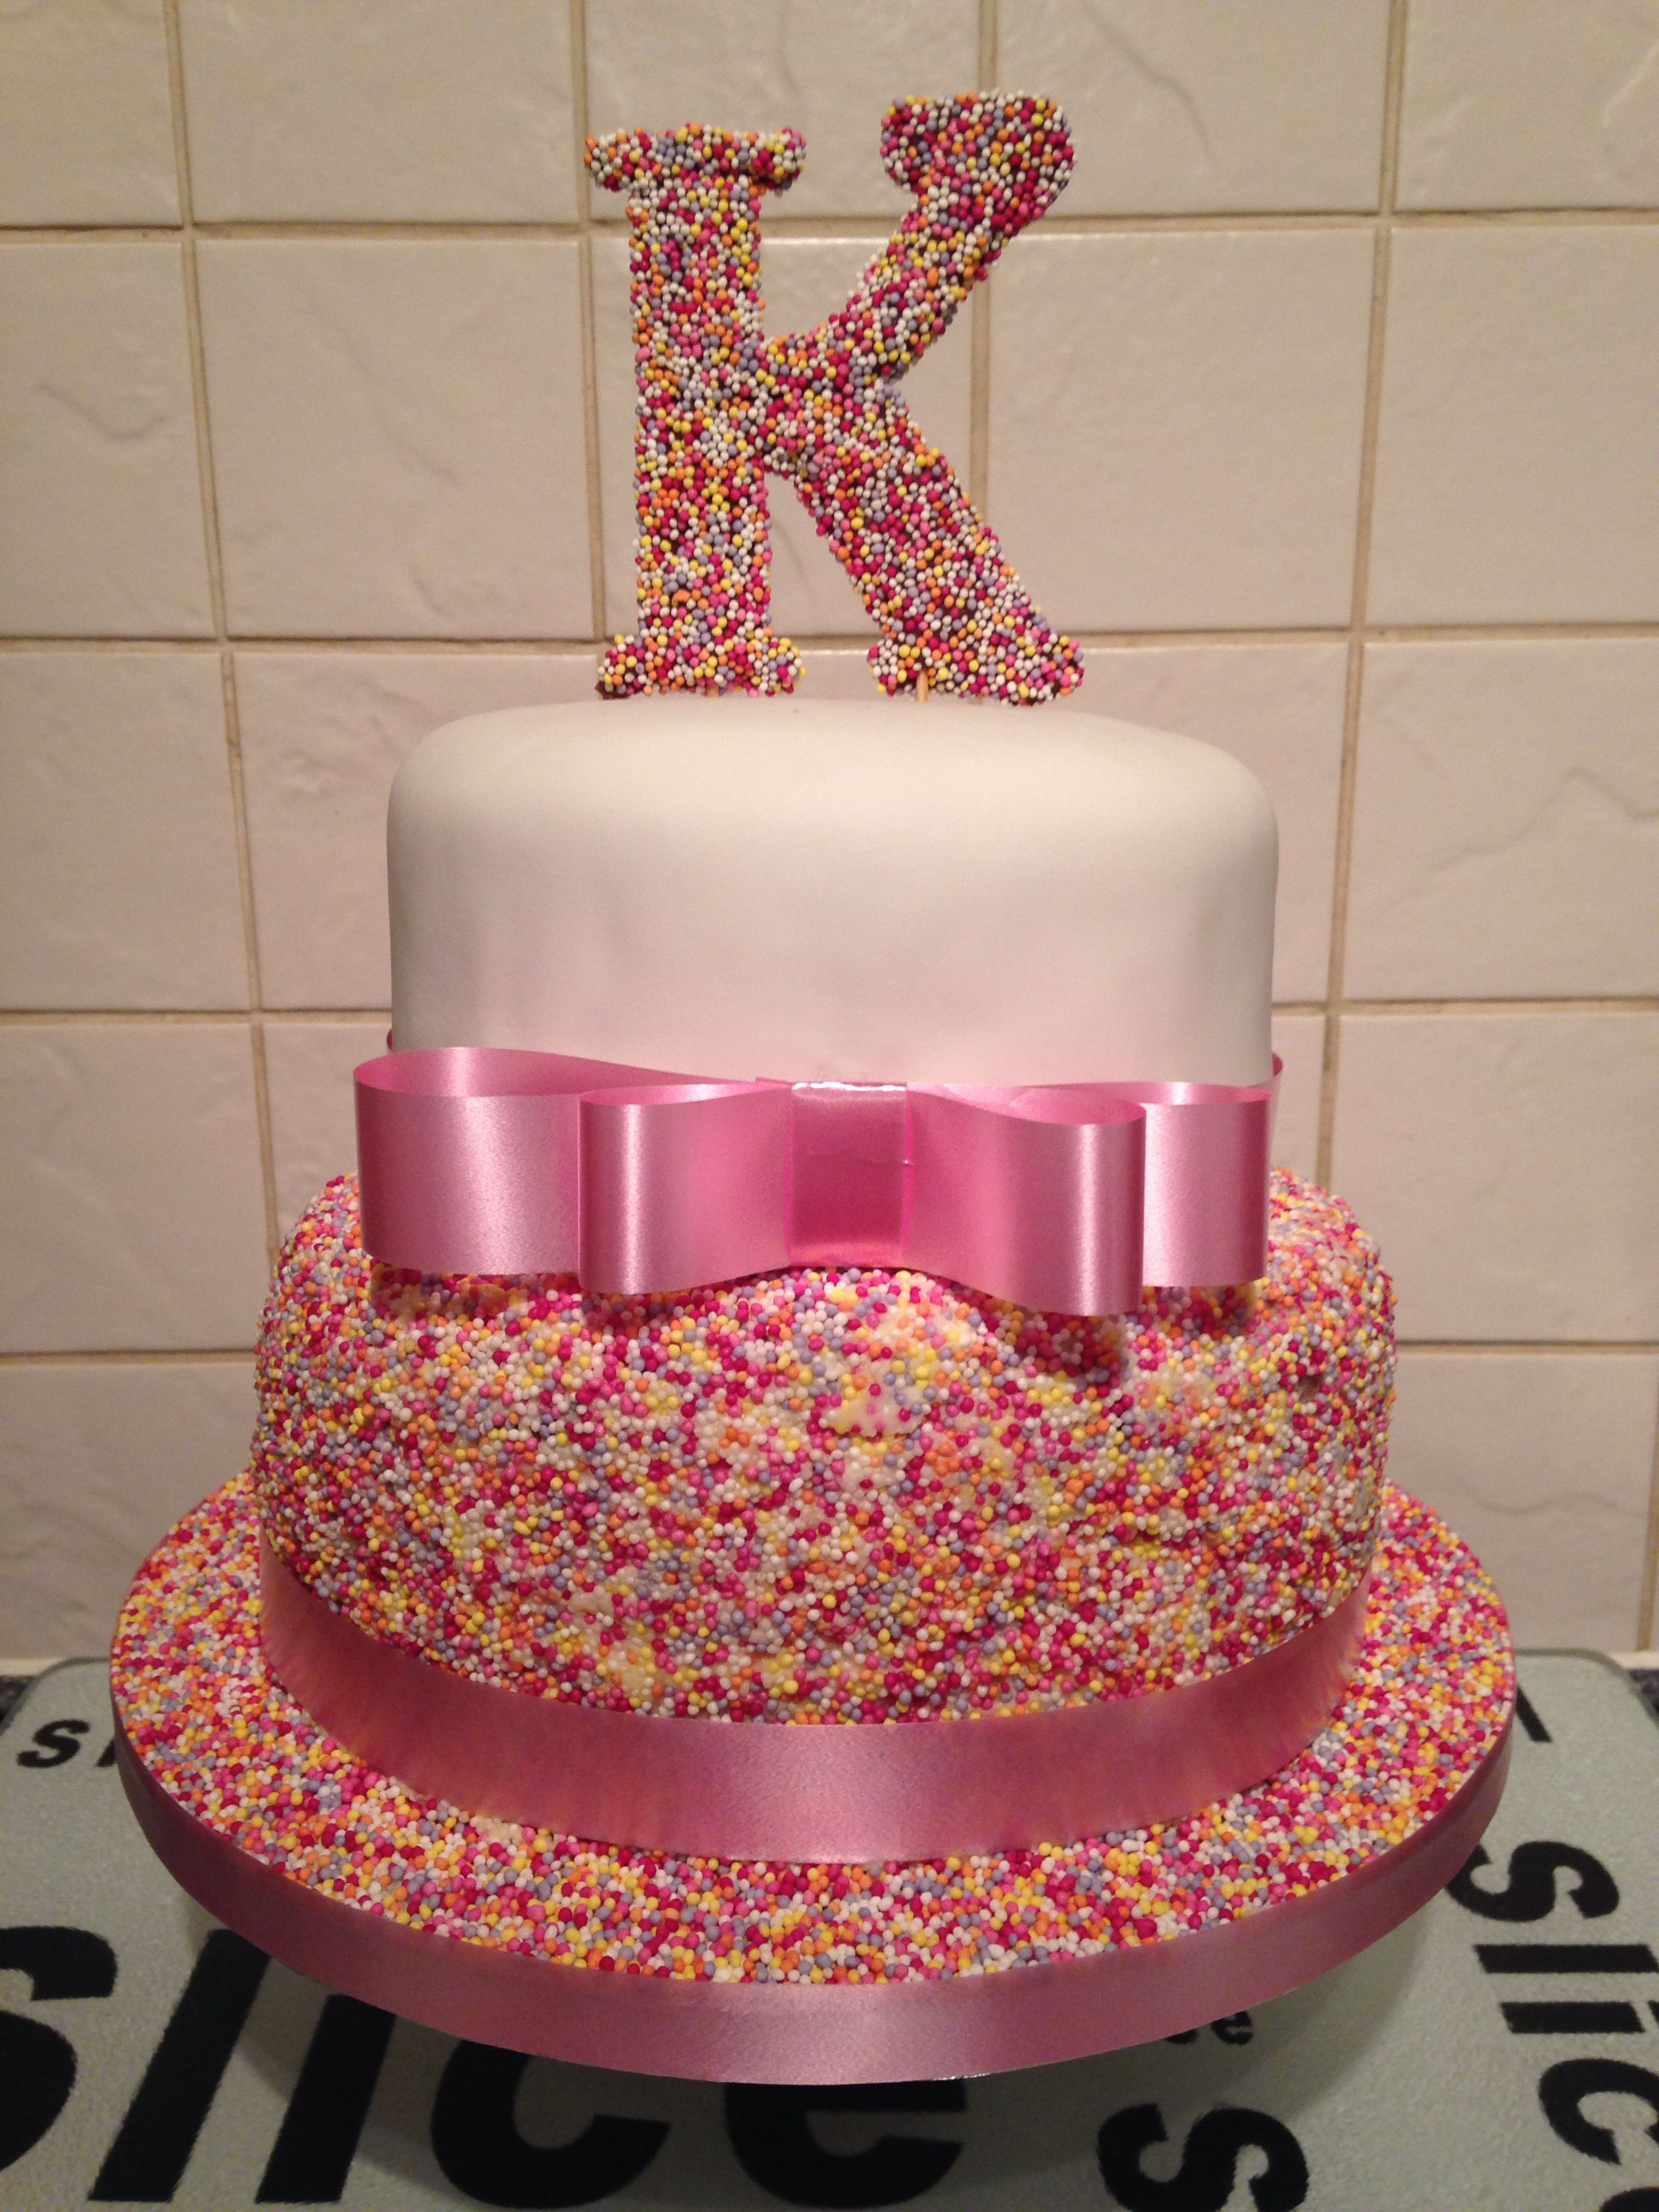 Best ideas about Two Tiered Birthday Cake . Save or Pin Girls 2 Tier Sprinkle 18th Birthday Cake Now.